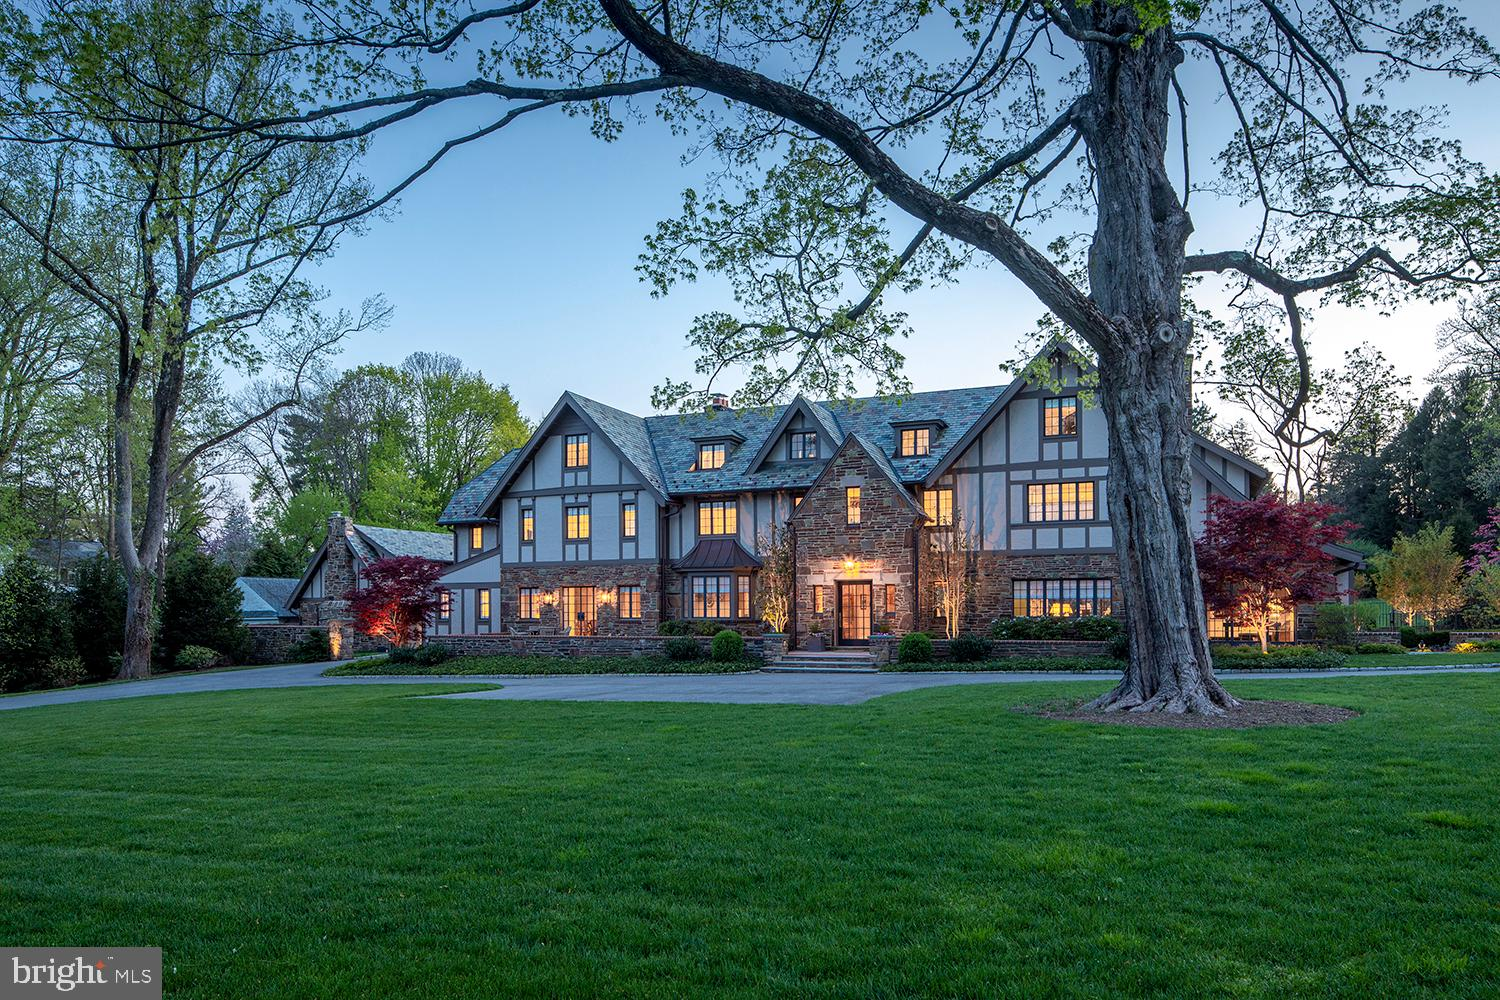 With breathtaking views of the 15th fairway of the famed Merion Golf Club, this stately English Tudor has recently been renovated, expanded and is exquisite inside and out.  Positioned on 2.24 acres, its stone walls and lit entrance piers at both Golf House and Andover Roads welcome you home.  The property comprises a grand main residence with 6 bedrooms, 5 full baths and 3 powder rooms, and separate carriage house with a 5-car heated garage and 2-bedroom apartment above. On the sprawling estate grounds you'll enjoy a sparkling pool with spa; flagstone patios for entertaining; and a new pool house with stone exterior, covered patio, masonry fireplace, full kitchen with bar counter, laundry and full bath.  Every inch of this jewel was considered by the owners in its no-expense-spared renovation and expansion. Thoughtful enhancements include an added parking area; rebuilt front veranda; extensive landscaping & exterior lighting; new and refinished windows; new custom French doors; refurbished slate roof; rebuilt chimney with new liners; new entry columns; and new copper roof & gutters on the family room and side entrance additions. All systems and mechanicals are also top of the line, from new plumbing and electrical to high-efficiency Geothermal HVAC; new hot water heaters; and an Elan smart system in the main and pool house for interior/exterior lighting, music & media controls.  Plus a new 38K BTU Kohler generator is on standby to power the entire main residence and garage doors in the event of an electrical outage. Gracious interiors received the same attention to detail and offer every luxury amenity. Among them is a new elevator accessing 3 levels; all new recessed lighting controlled by Lutron Home System; radiant heat flooring in the entry foyer, rear hall, family room and master bath; and a stunning new custom chef's kitchen with Waterworks cabinetry, a huge island, custom hood/ventilation system, and full suite of premium Gaggeneau, Sub-Zero & Miele professional appliances. Elegant remodeling continues in the generous living and dining rooms with fireplaces, bedrooms and baths, laundry room, home command center, and entire 3rd level play area which includes two full baths, and two bedrooms, one with three cabin-style platform beds for the kids. The breakfast room, gourmet kitchen and adjacent vaulted family room offers custom windows on three exposures and an easy indoor-outdoor flow through glass doors. A handsome library with fireplace flanked by built-in cabinetry provides a perfect place to read, relax and work. Well-proportioned bedrooms await upstairs for family and guests. The highlight is the luxurious primary suite with a spacious dressing room, custom closets, and spa bath with his/her vanities, a freestanding soaking tub, oversized shower, and water closet. The lower-level extends the living with a large-screen media room with beamed ceilings and gas fireplace, and cards/game area with full bar. Incomparable views of the renowned Merion Golf Club, and a prestigious address near all conveniences heighten the allure.